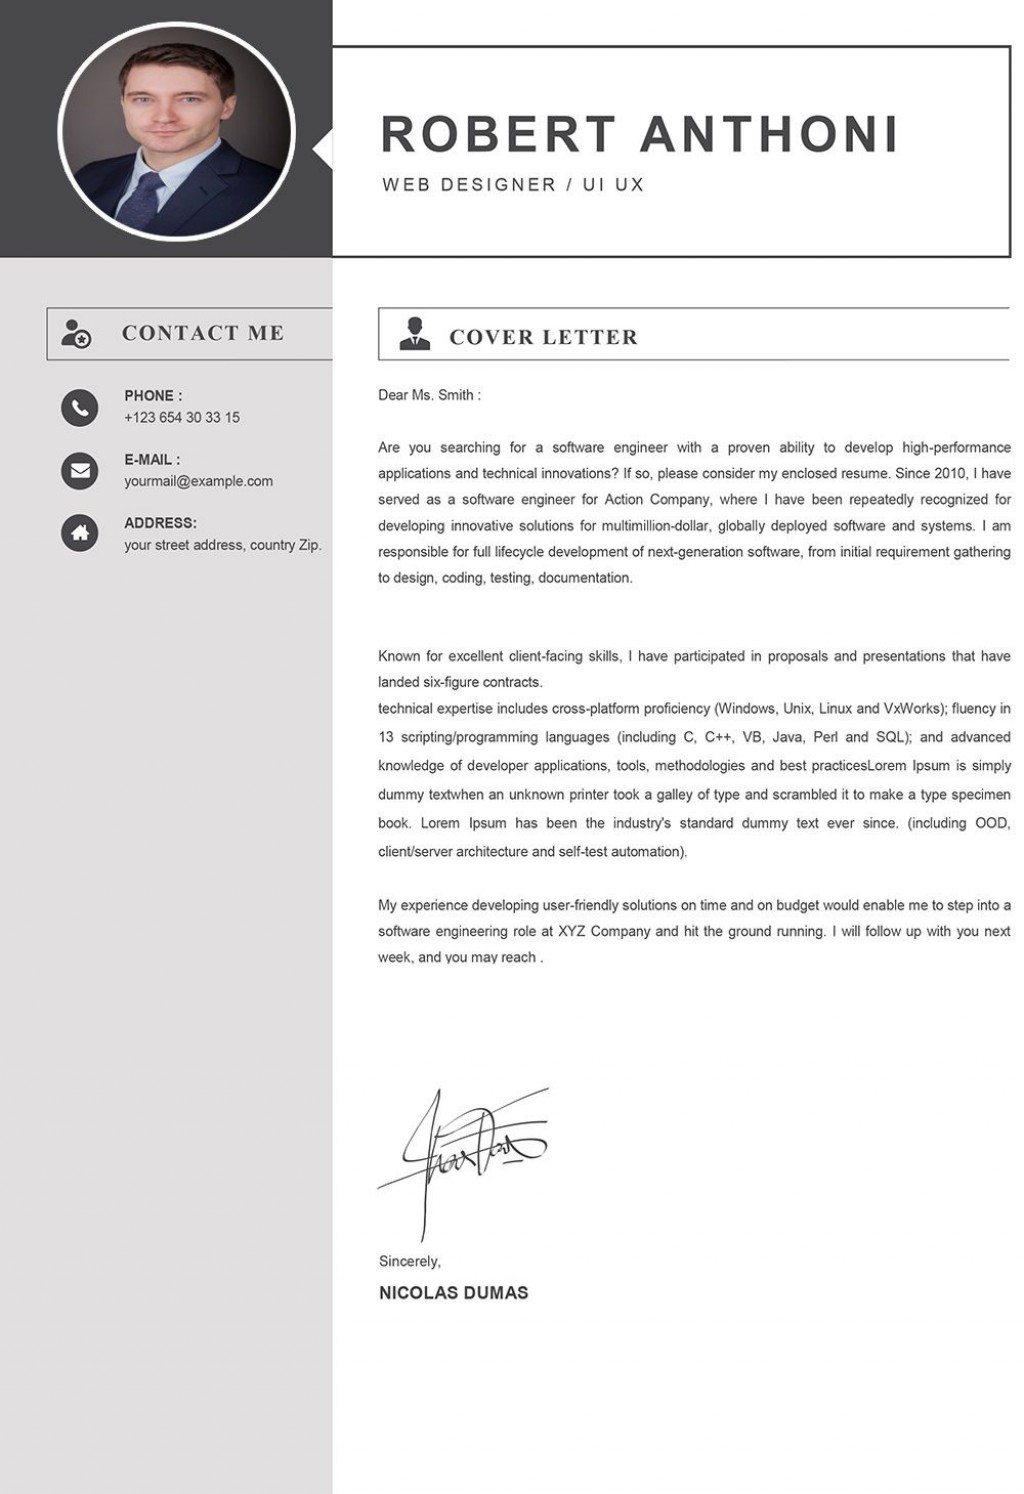 000 Exceptional Microsoft Cover Letter Template Download Highest Clarity  Word FreeLarge